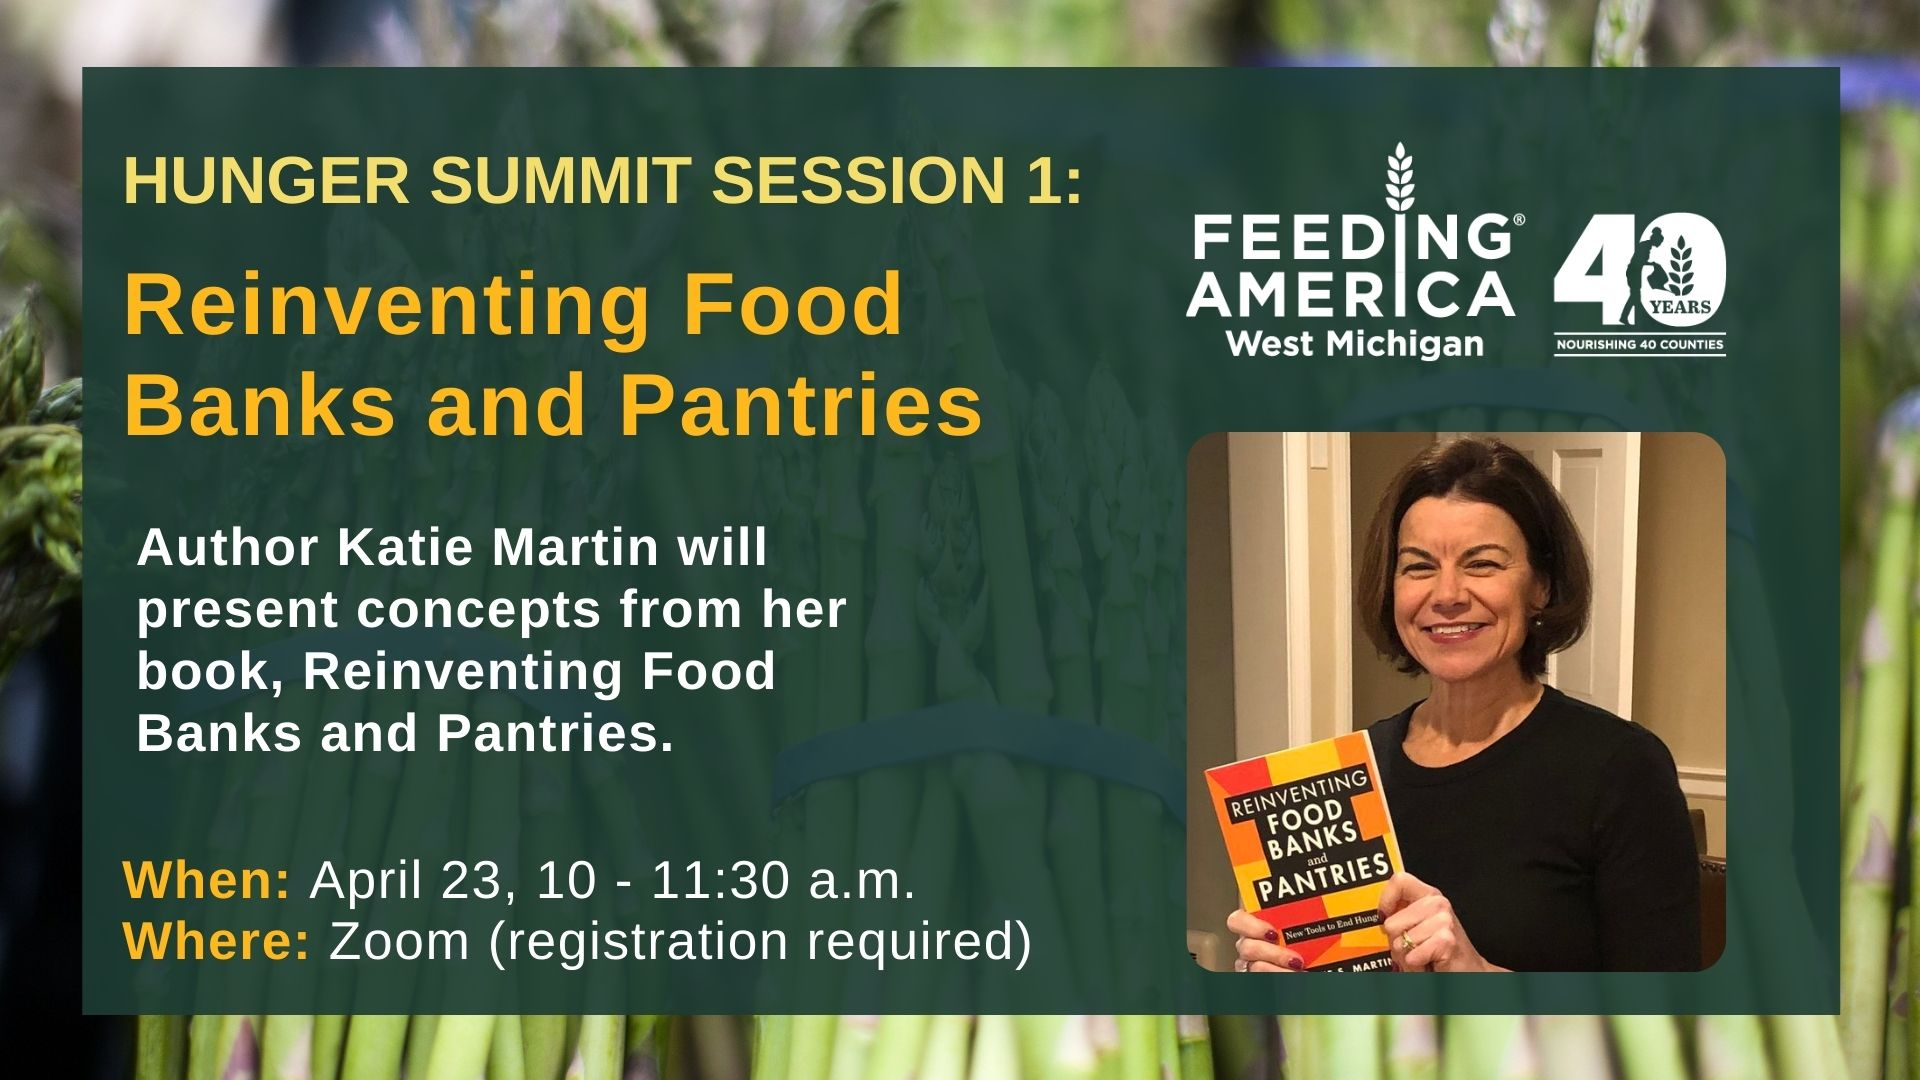 Hunger Summit Session 1 - Reinventing Food Banks and Pantries - Author Katie Martin will present concepts from her book, Reinventing Food Banks and Pantries - Watch On Youtube